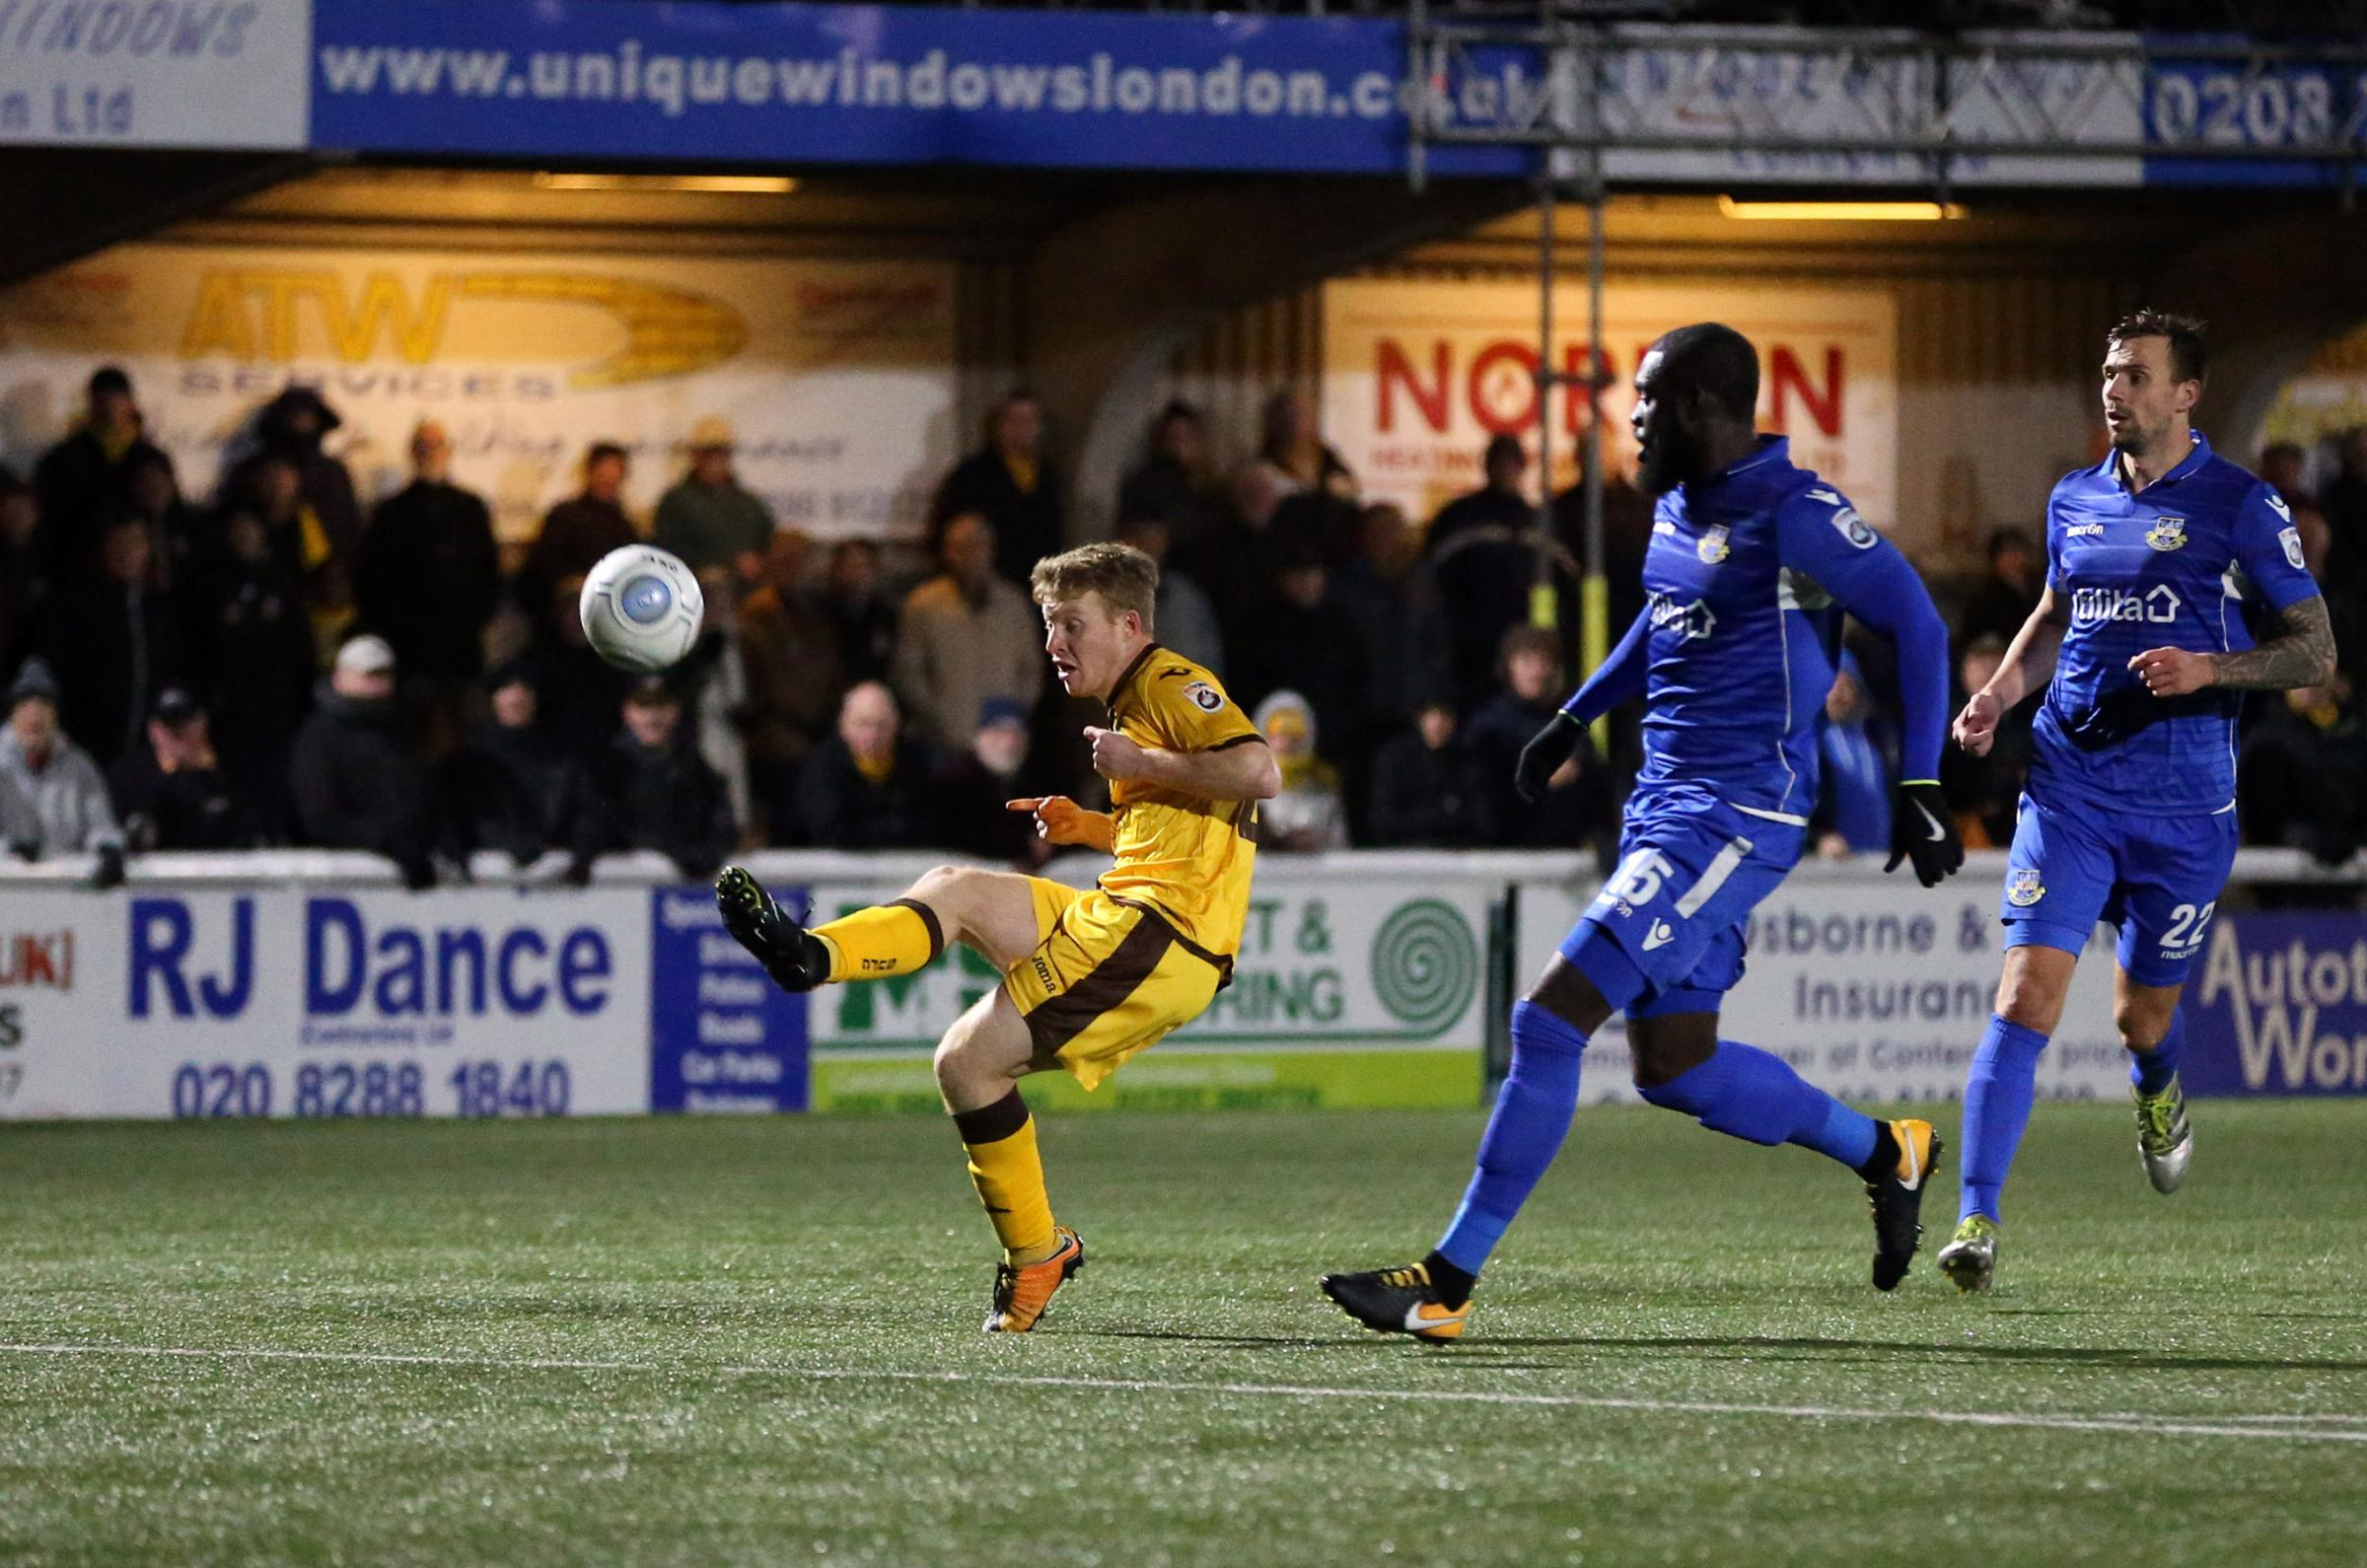 Tommy Wright scored a hat-trick for Sutton United against Molesey in the Surrey Senior Cup on Monday night. Picture: Paul Loughlin